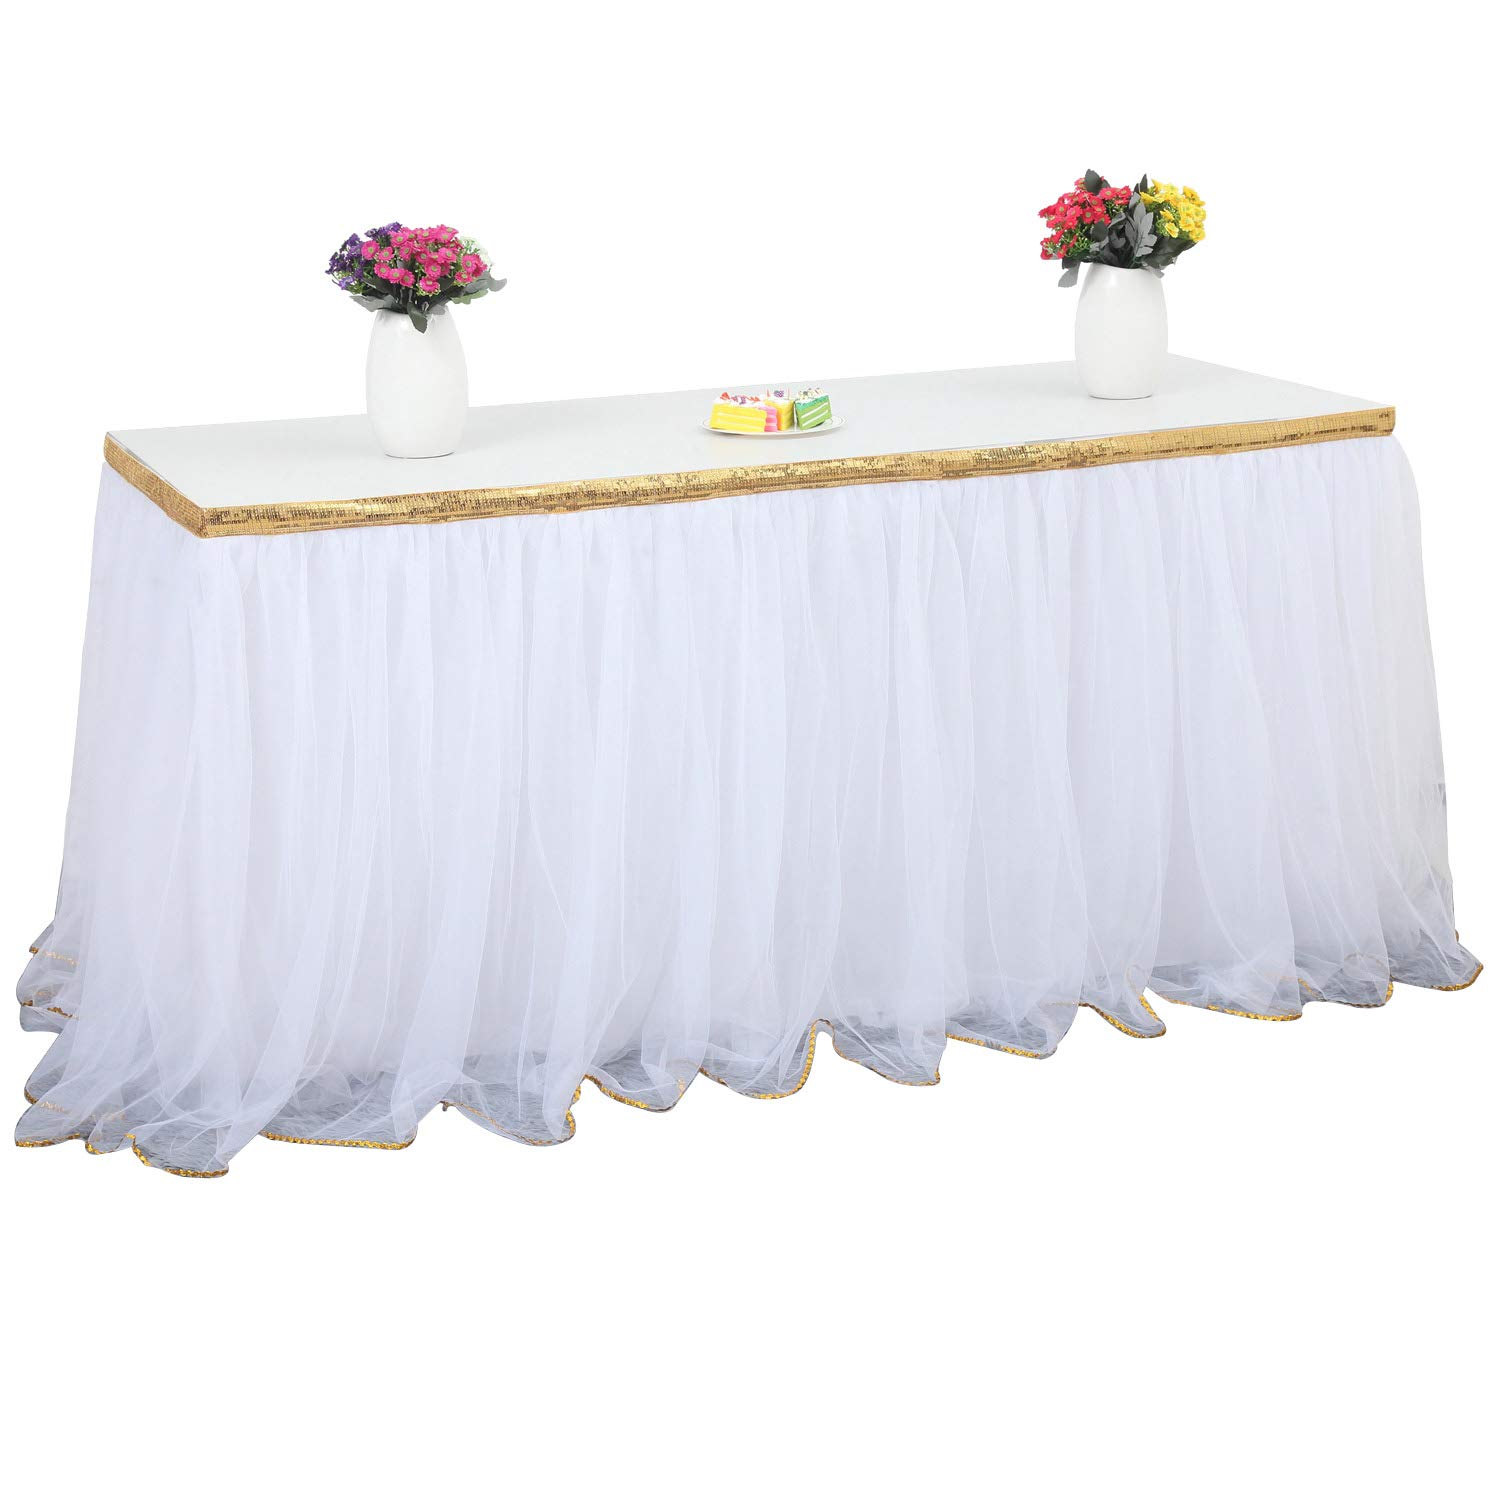 3 Yards Handmade Gold Brim Top 3 Layers Fluffy Tulle Tutu Table Skirt Mesh Tableware For Party Wedding Birthday Home Decoration (3yd Lx30in H, White 01)